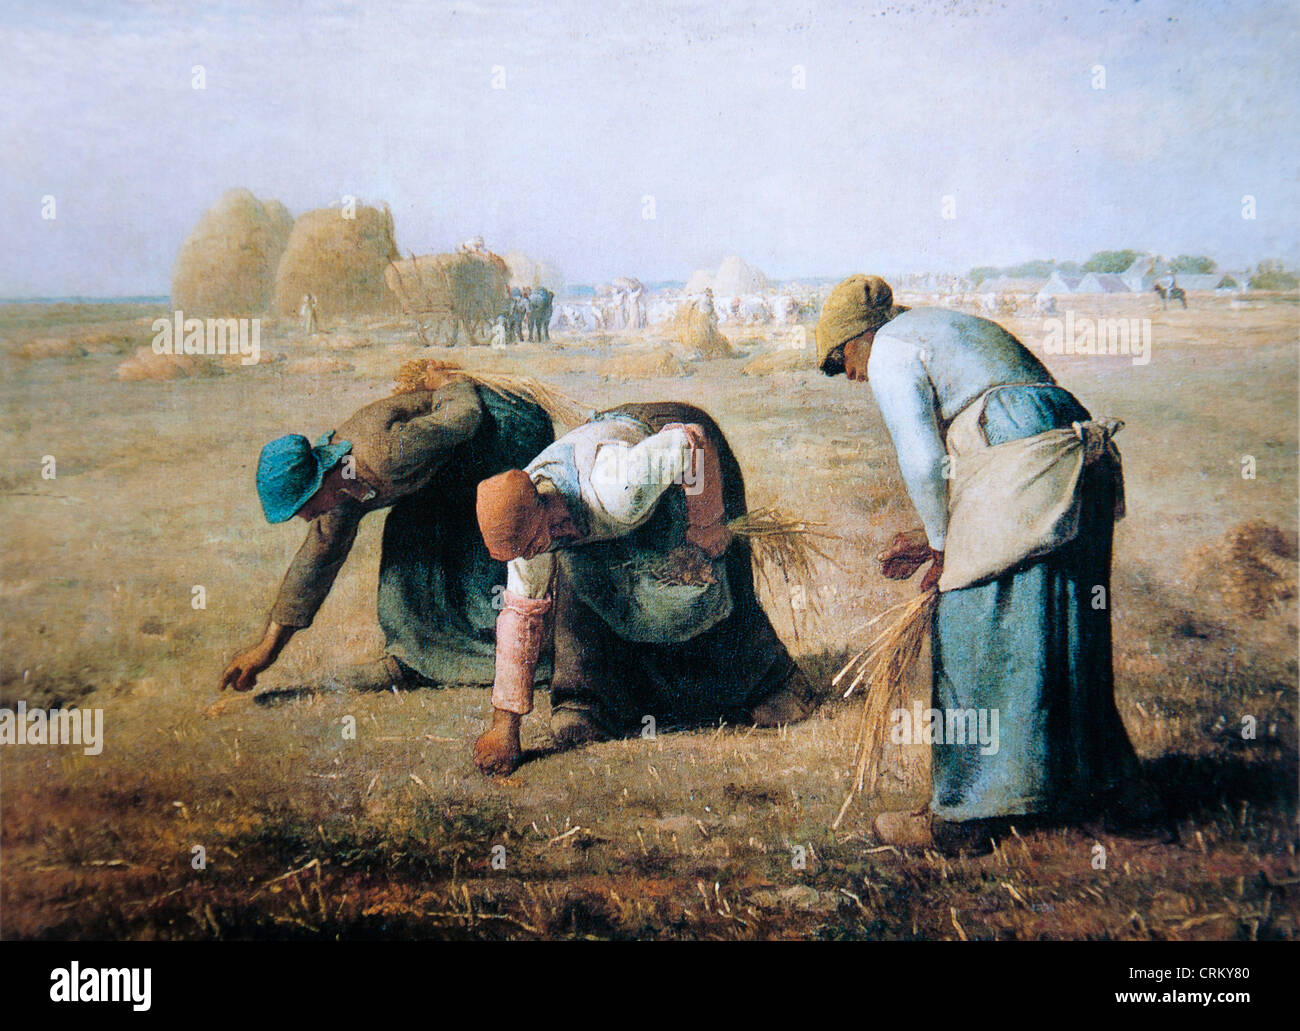 jean francois millet the gleaners stock photo 48996304 alamy. Black Bedroom Furniture Sets. Home Design Ideas